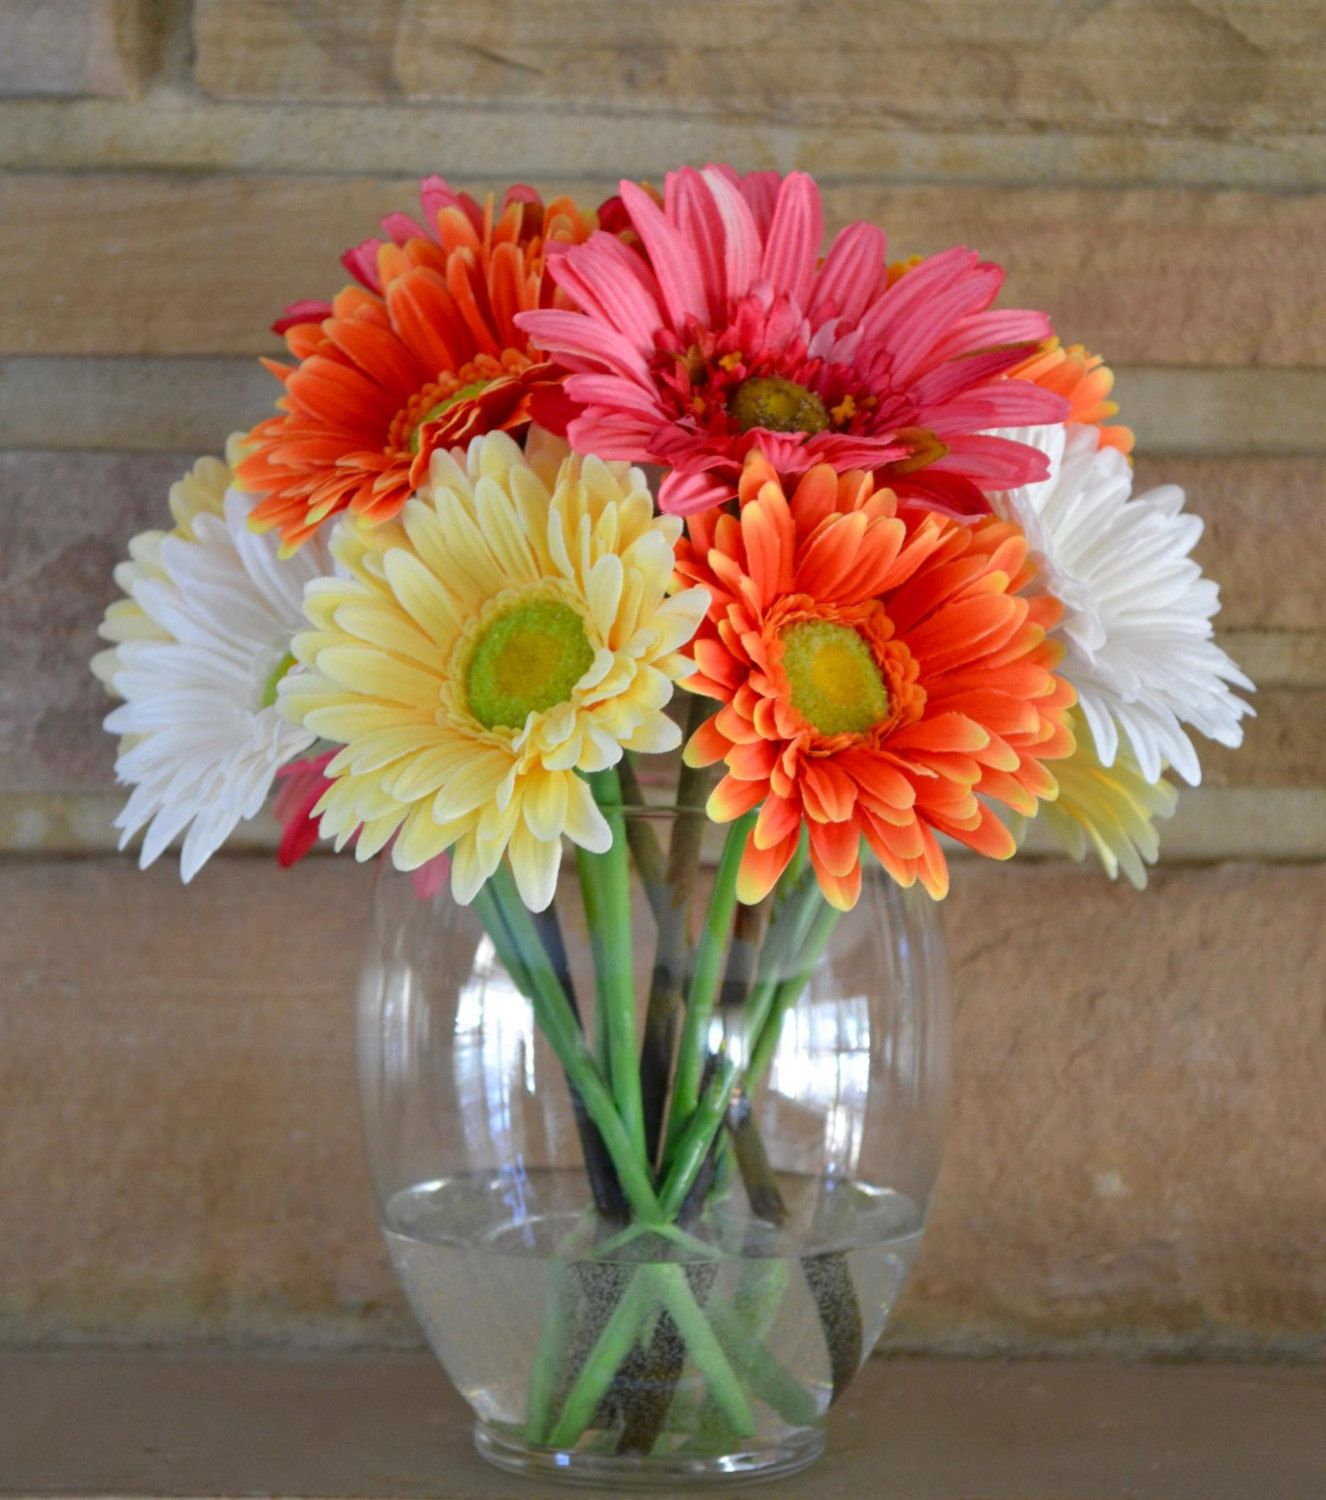 Gerbera daisy flower arrangement in glass vase faux water acrylic gerbera daisy flower arrangement faux flowers daisies silk flowers glass vase acrylic water spring summer flowers kitchen flowers izmirmasajfo